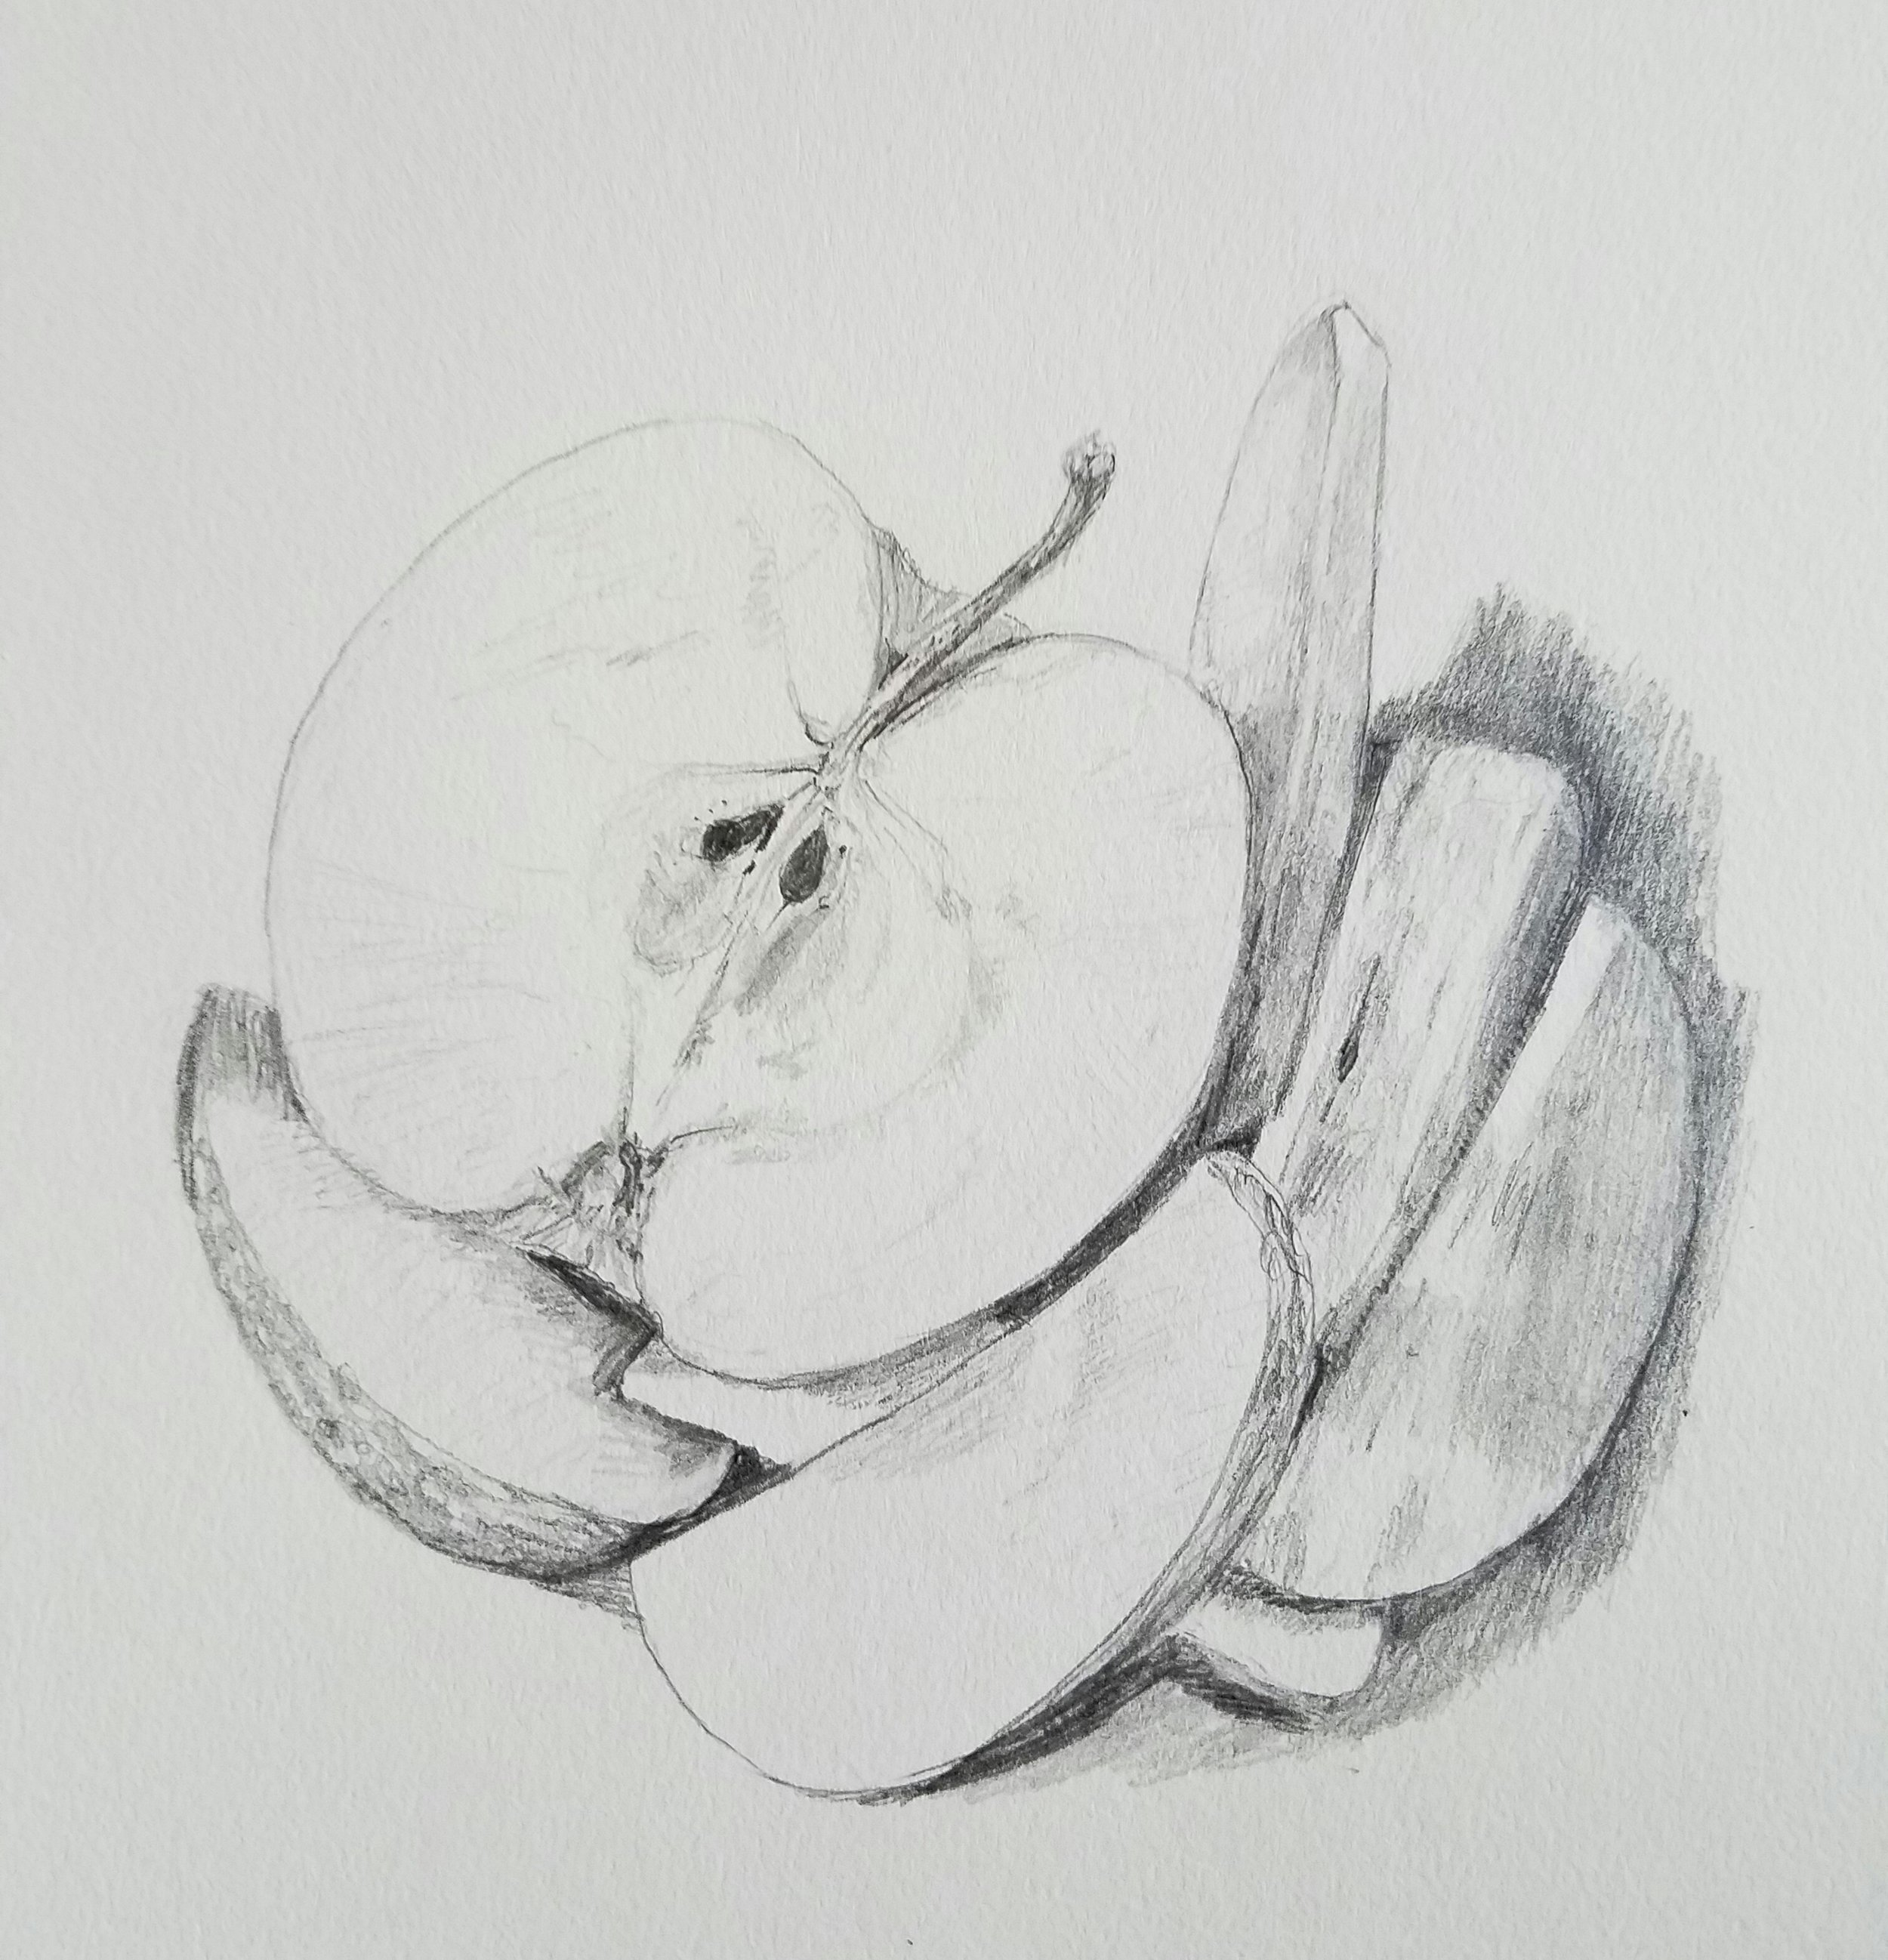 Apple, graphite, 2017